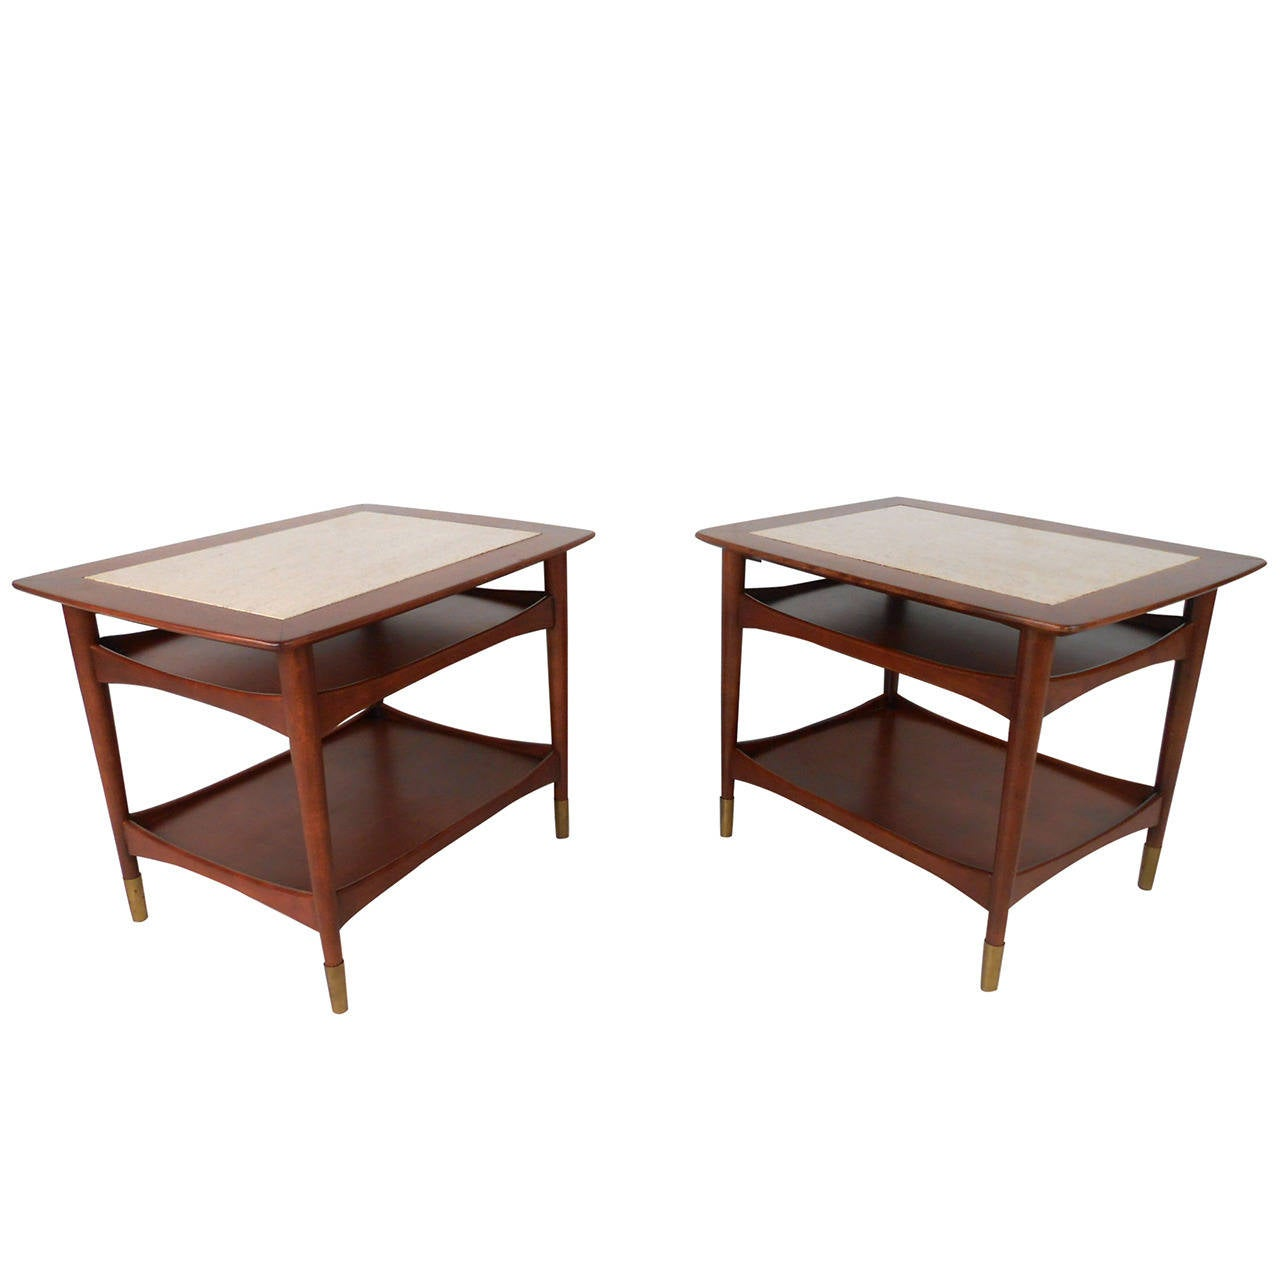 Unique mid century modern walnut and marble side tables Modern side table